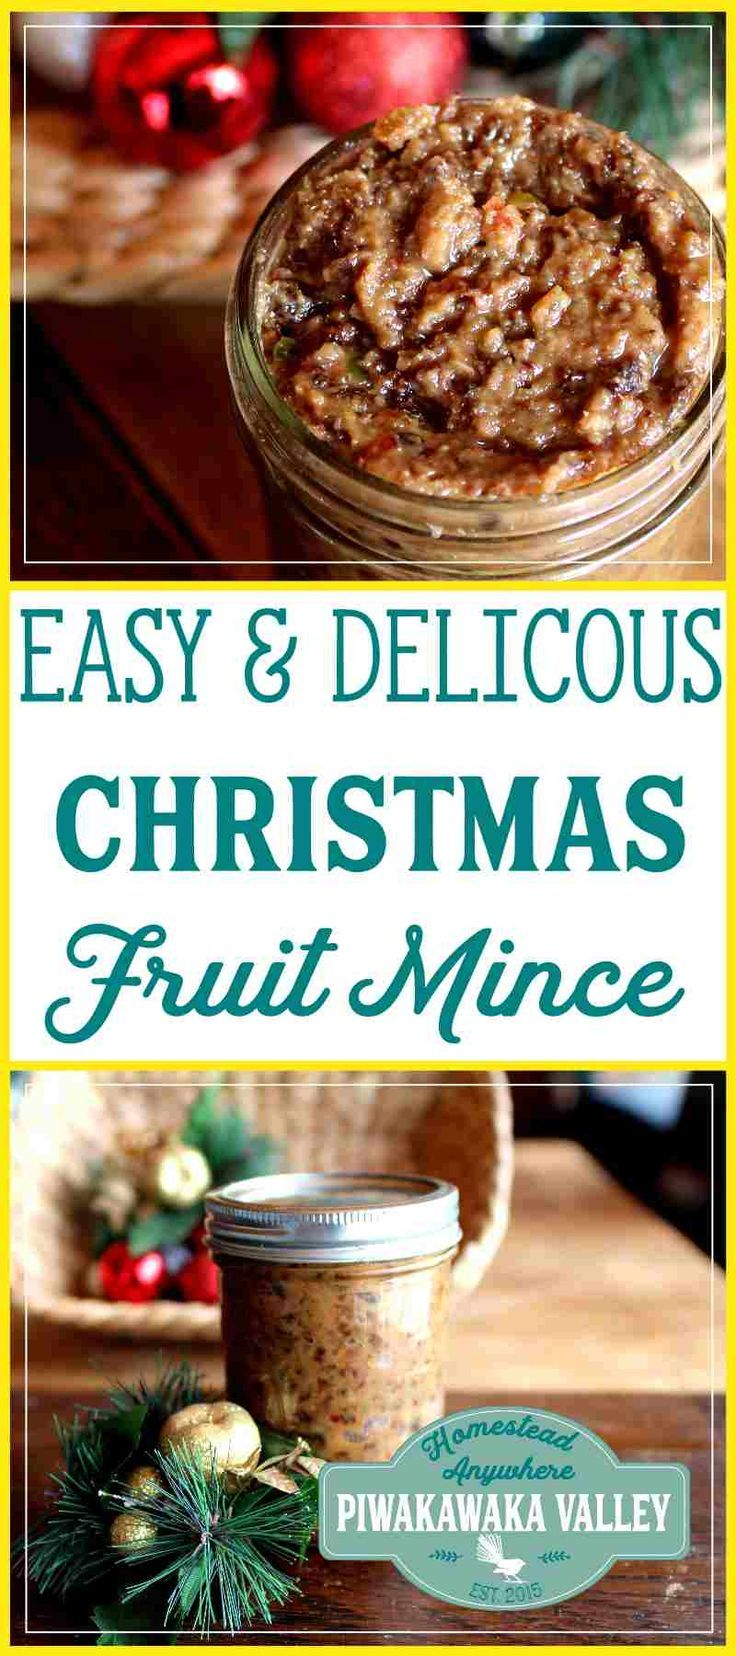 This quick and easy Christmas fruit mince recipe comes together with ease and will store in your fridge for up to a year. You can make it with or without the alcohol and use it to make your favorite mince pie recipe. #christmas #recipe